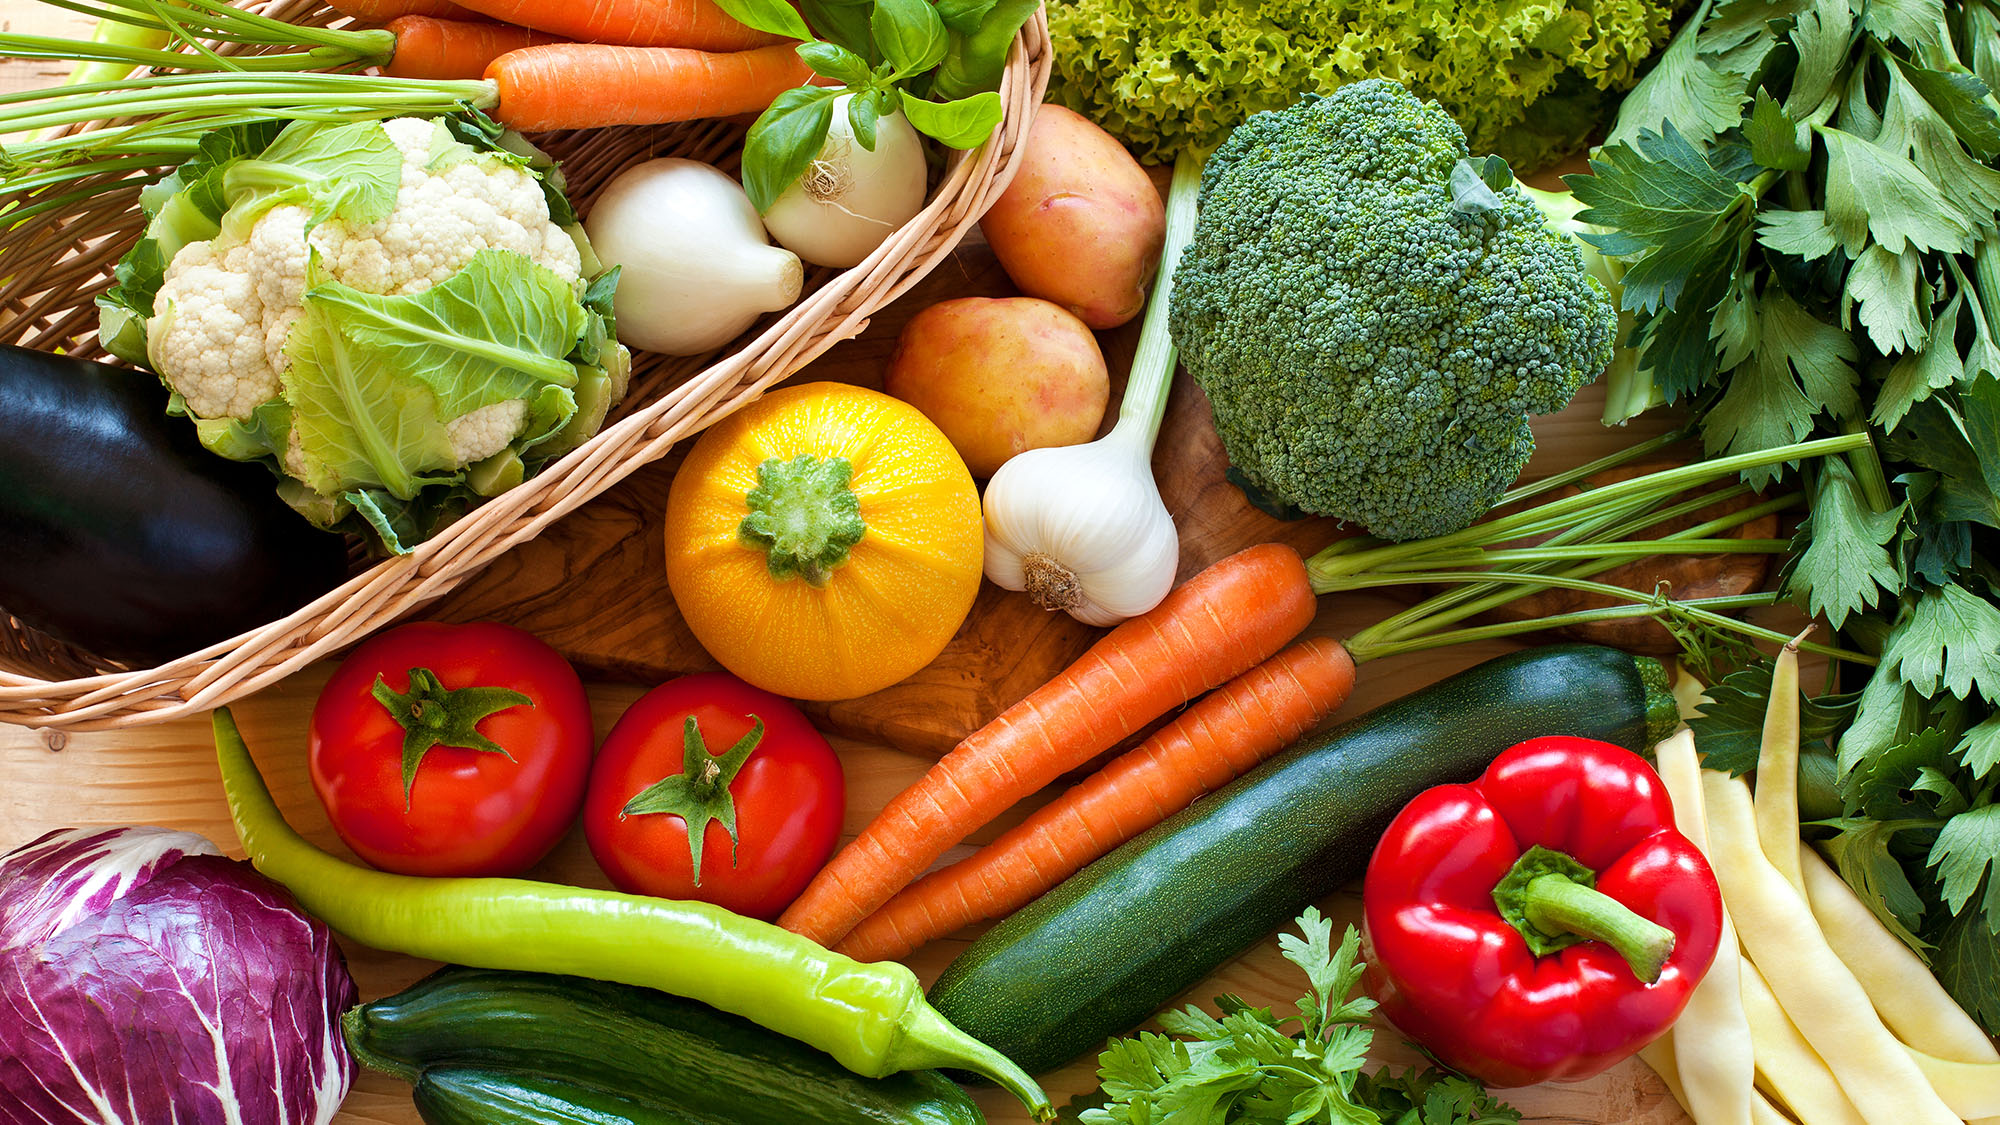 How to you get the most nutrients from your vegetables